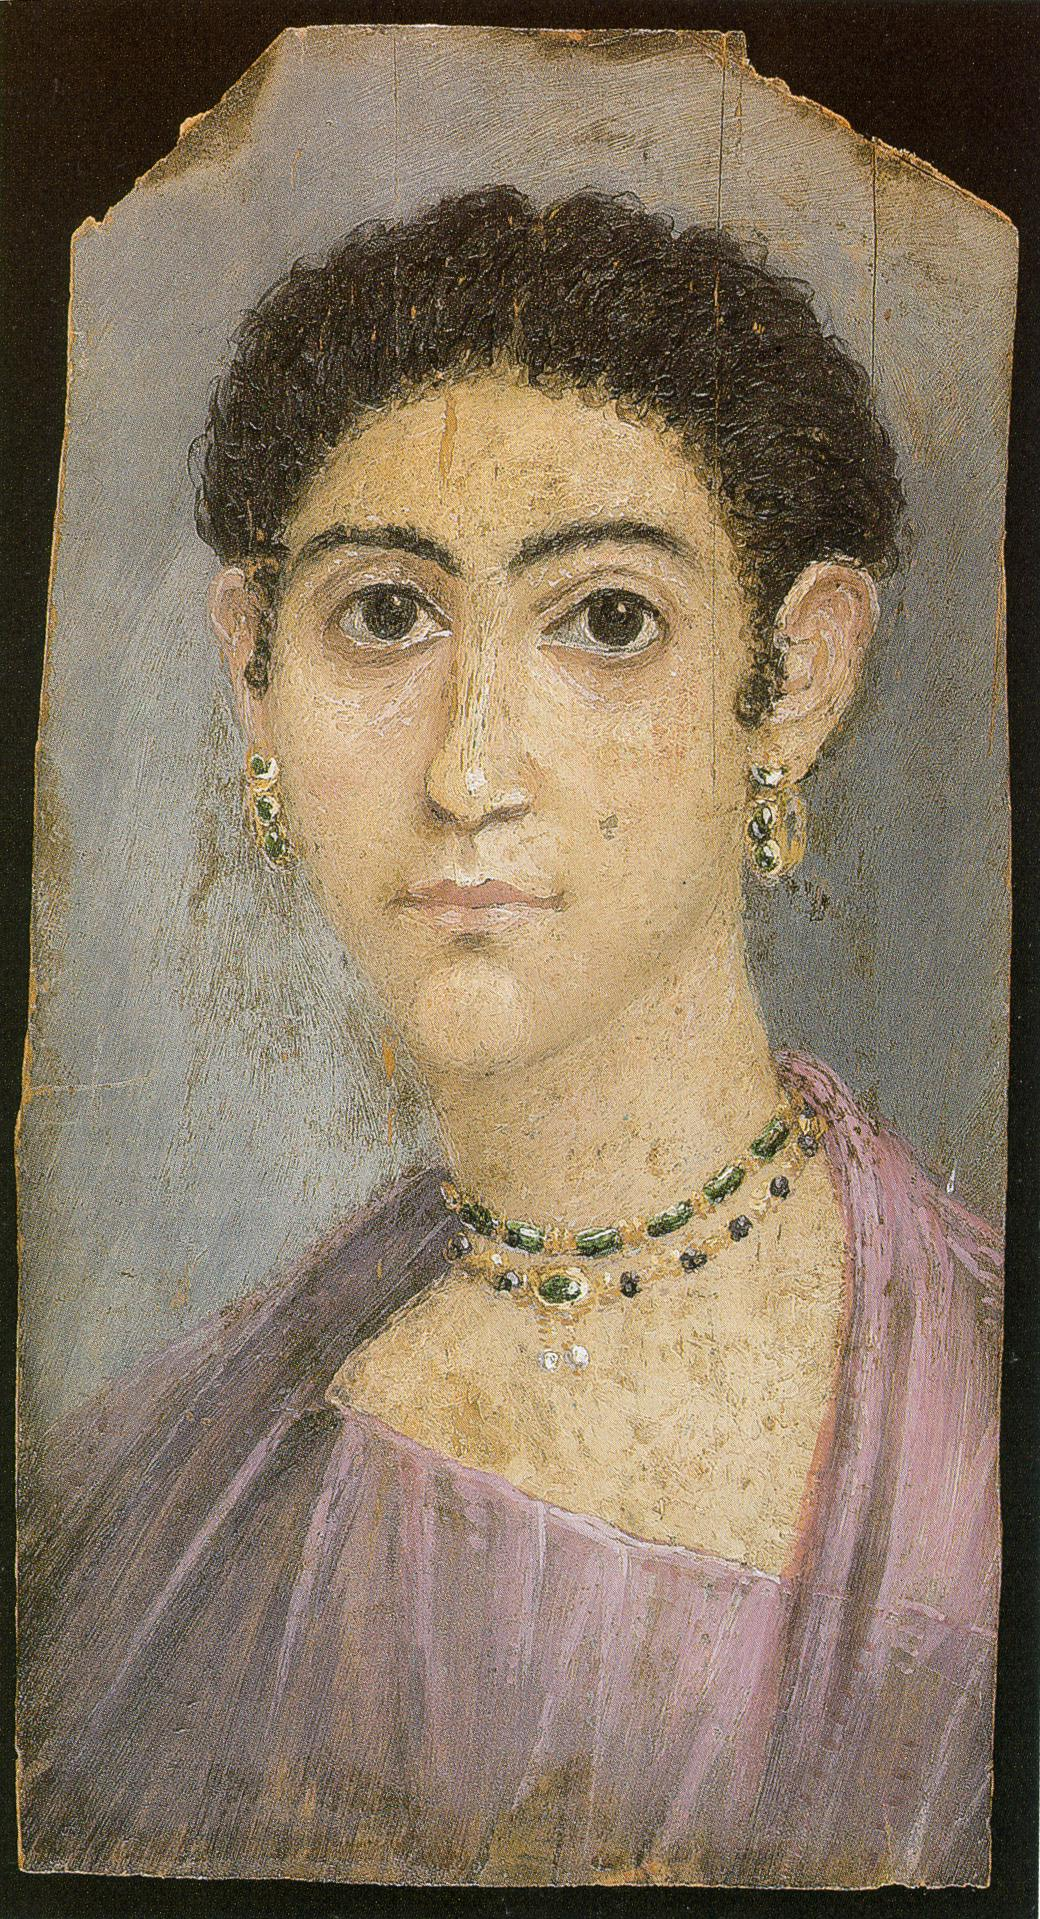 Fayum Mummy Portraits Expose Information About Precise ...